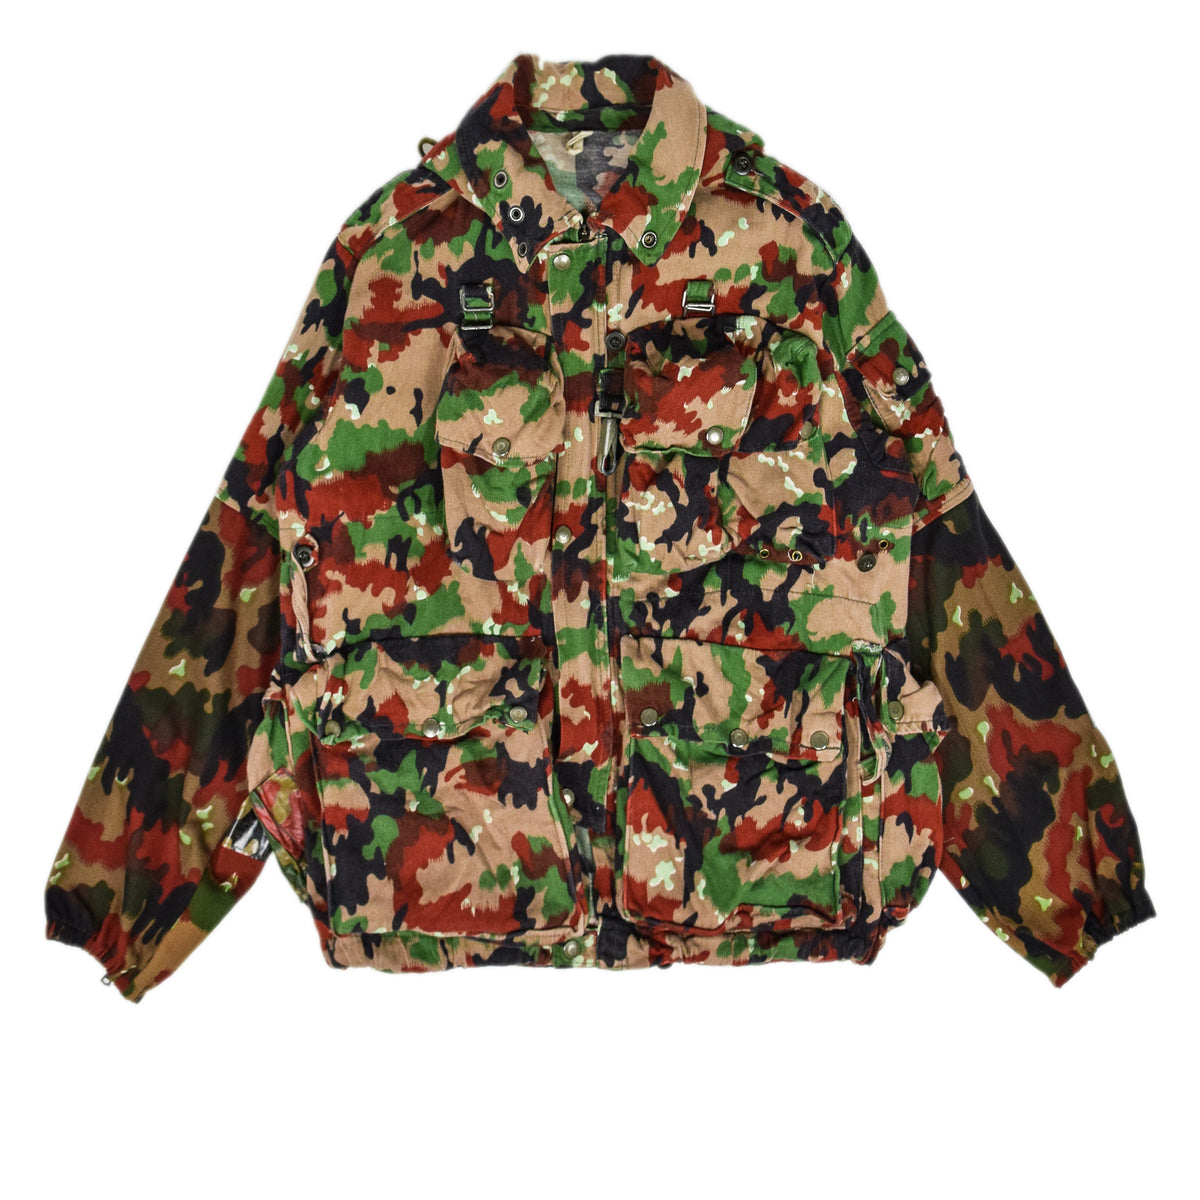 Vintage 70s Swiss Army Alpenflage Camo Sniper Combat Field Jacket M / L front